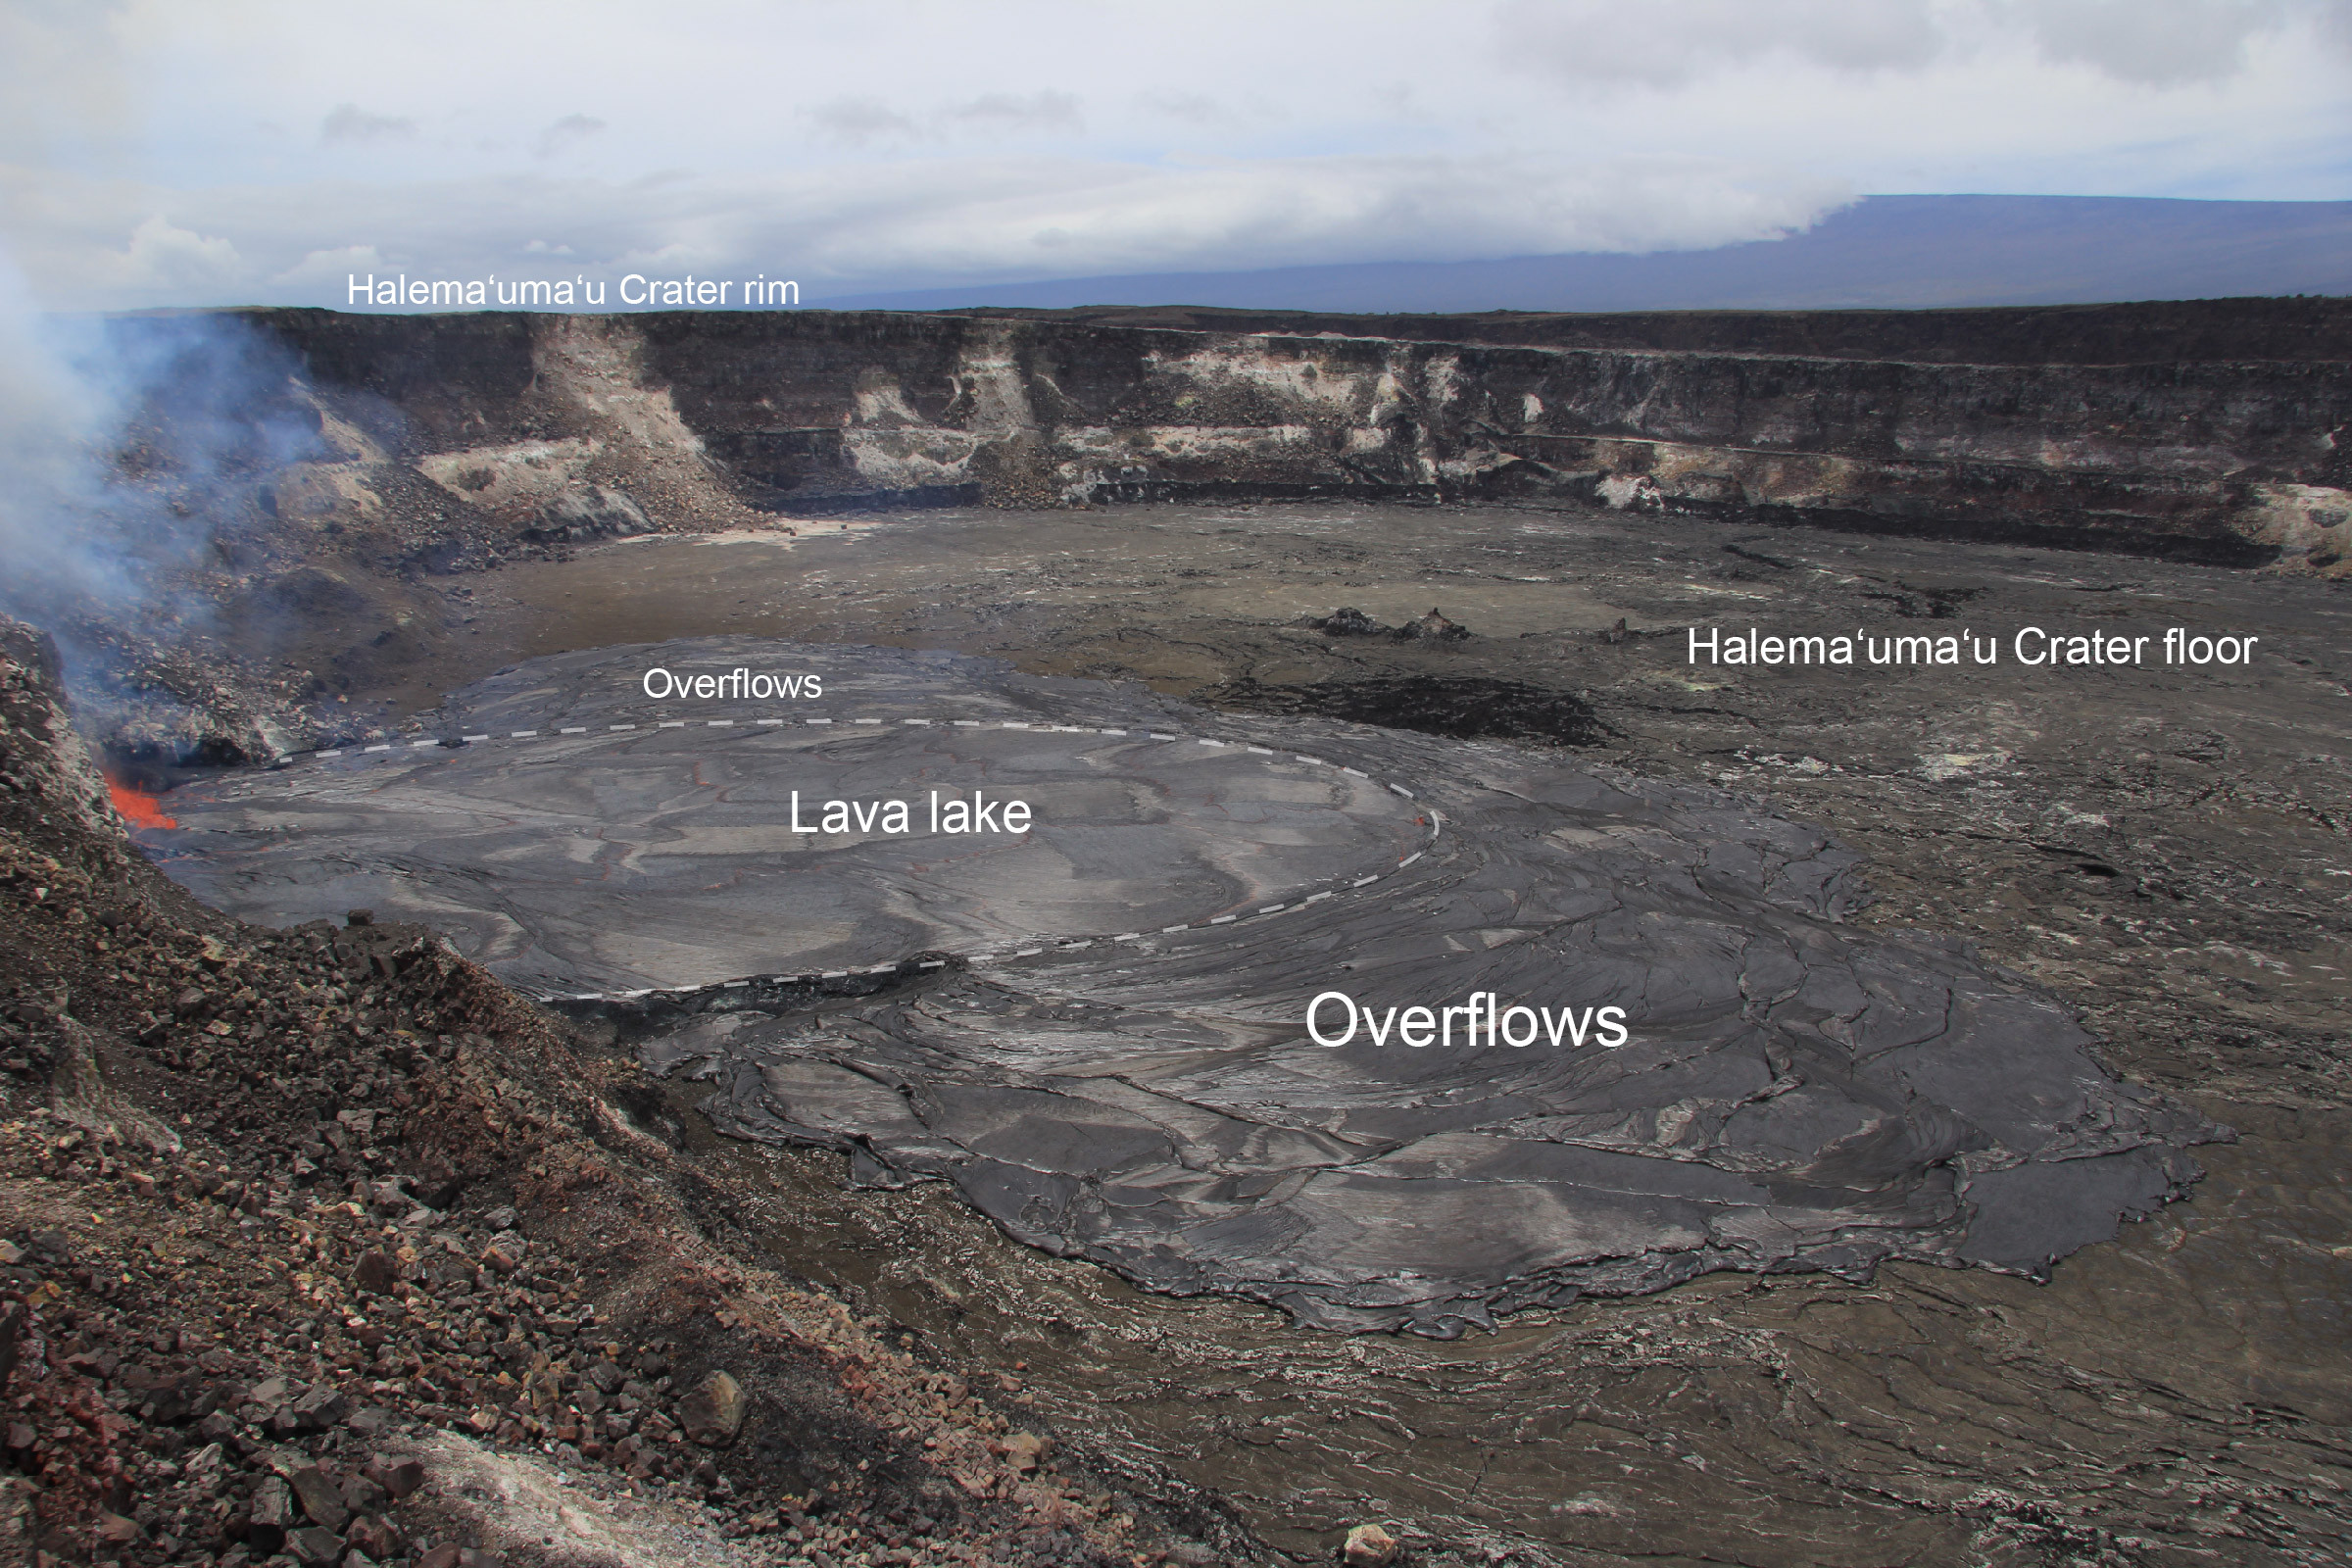 (USGS image) Labeled poto of the overflowing lava lake taken from the rim of Halemaʻumaʻu.